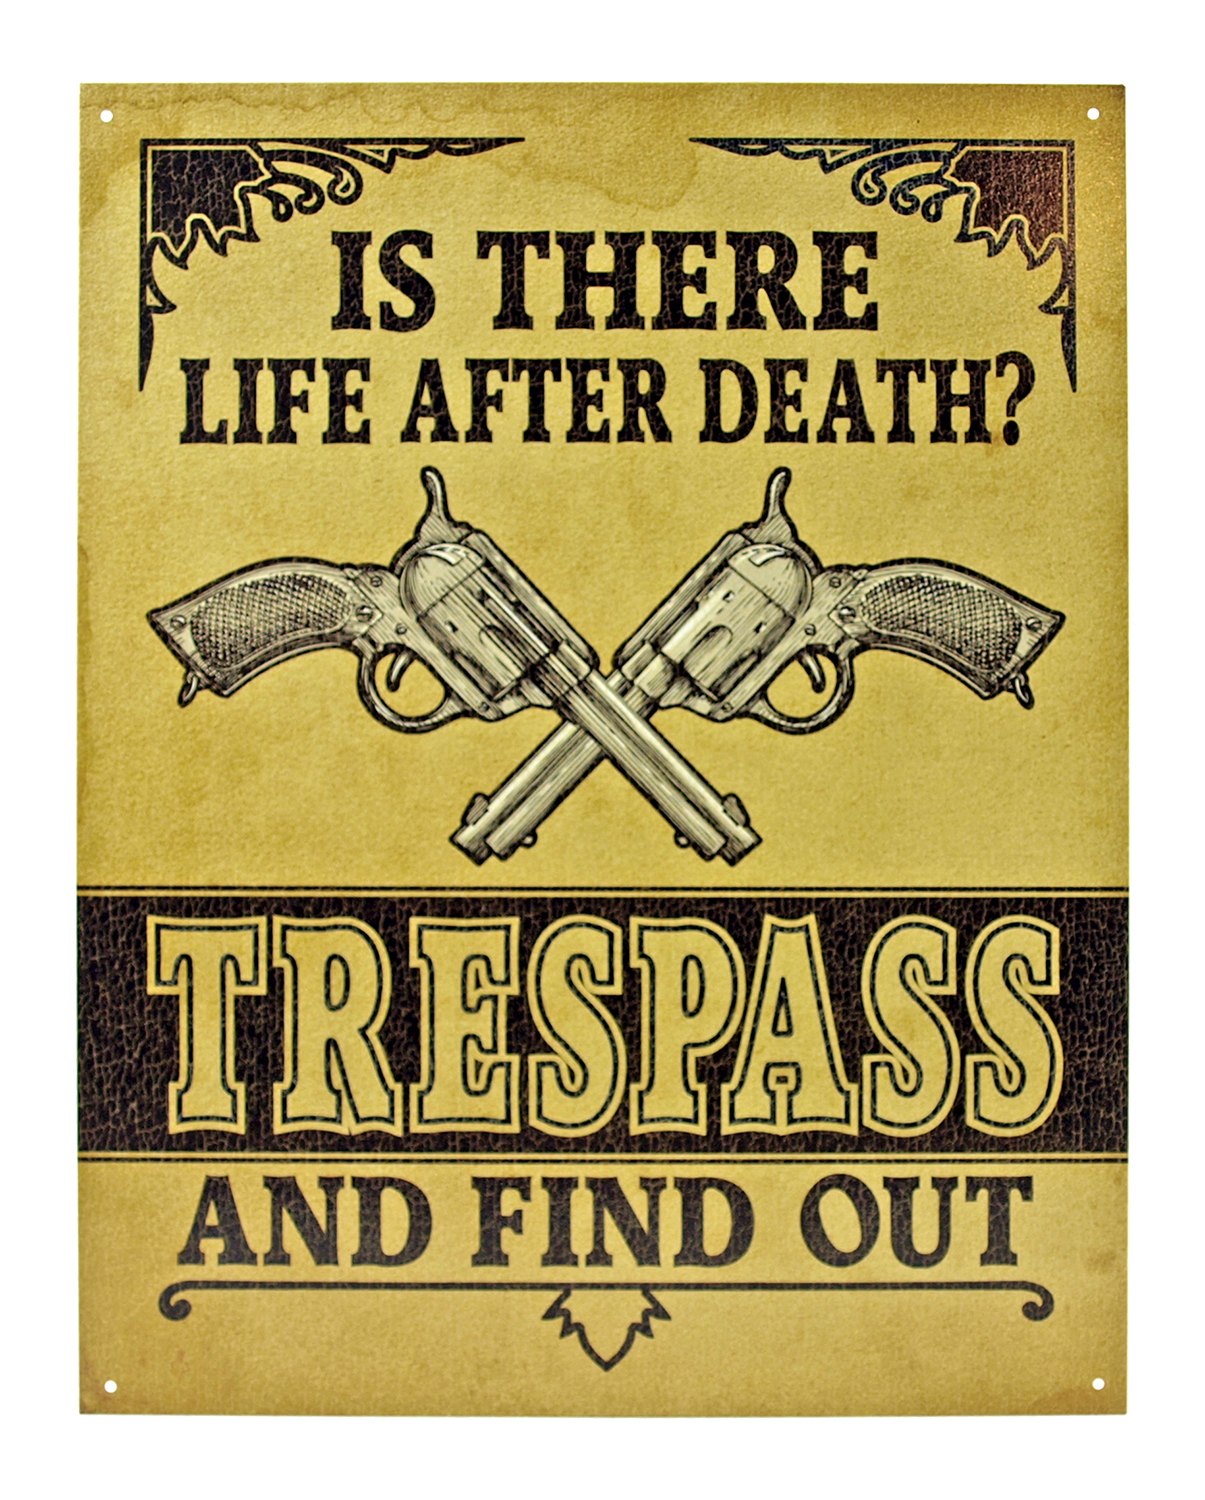 Life After Death? Trespass and Find Out - Trespassing Metal Tin Sign